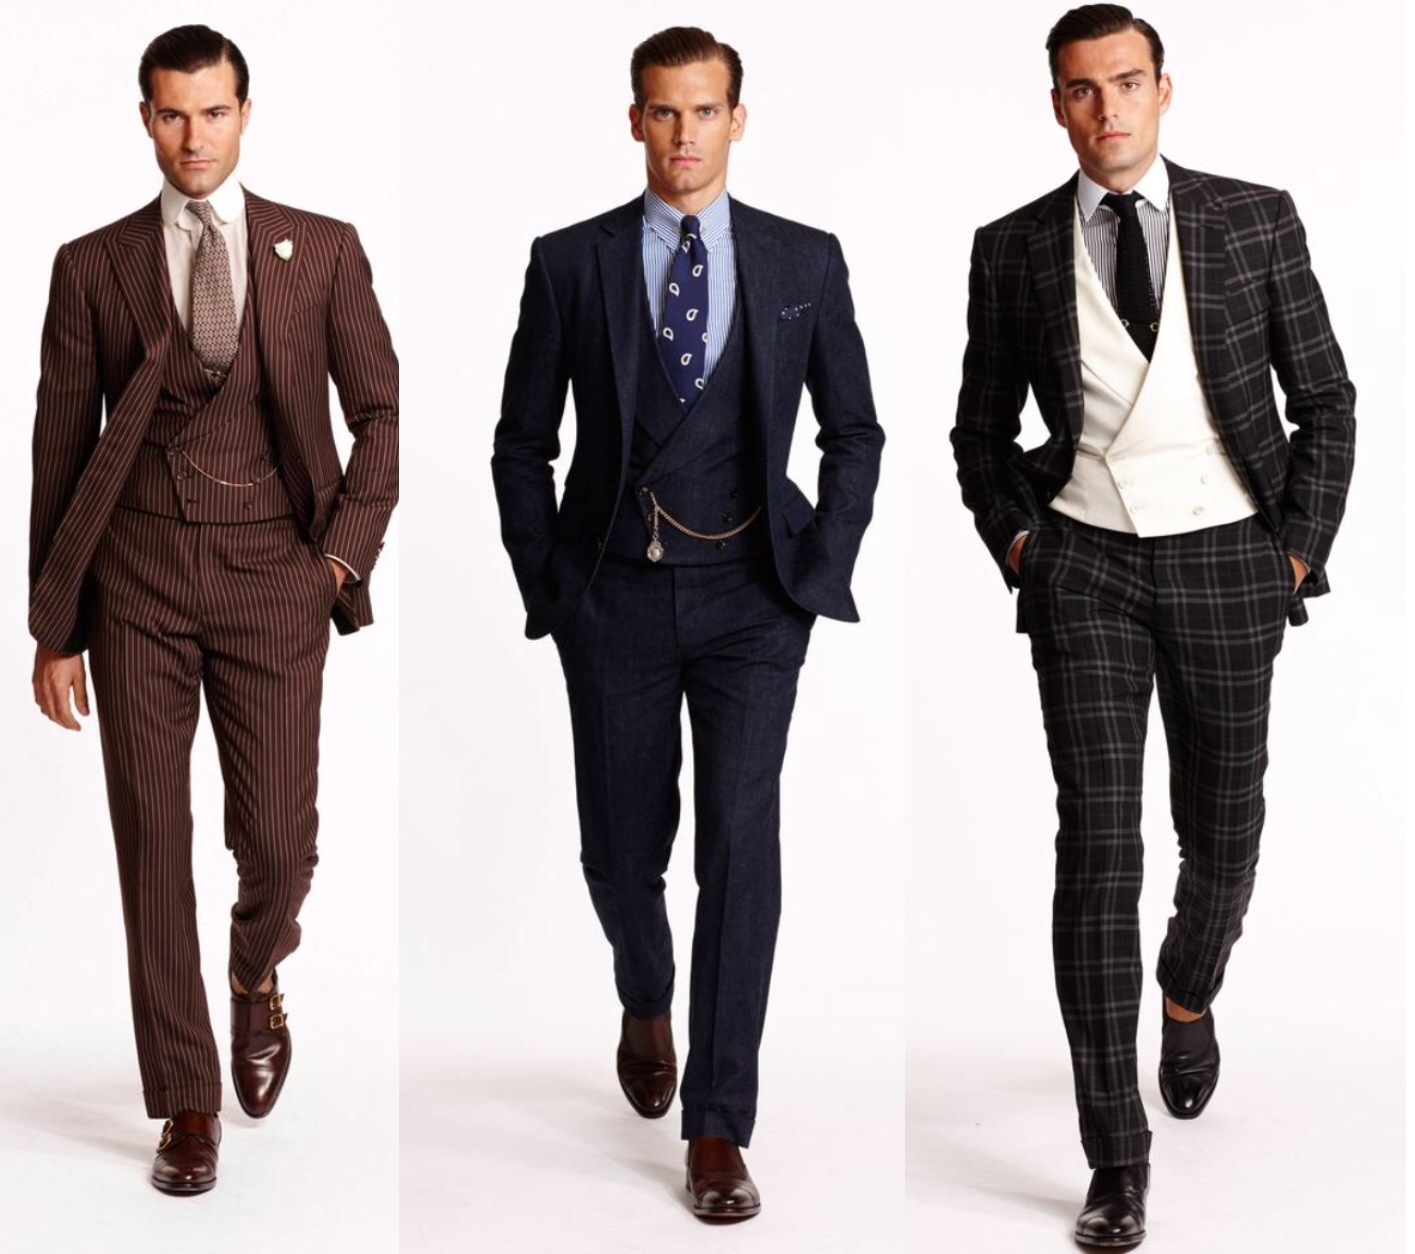 Men Fashion Trends 2015 Tagged clothing